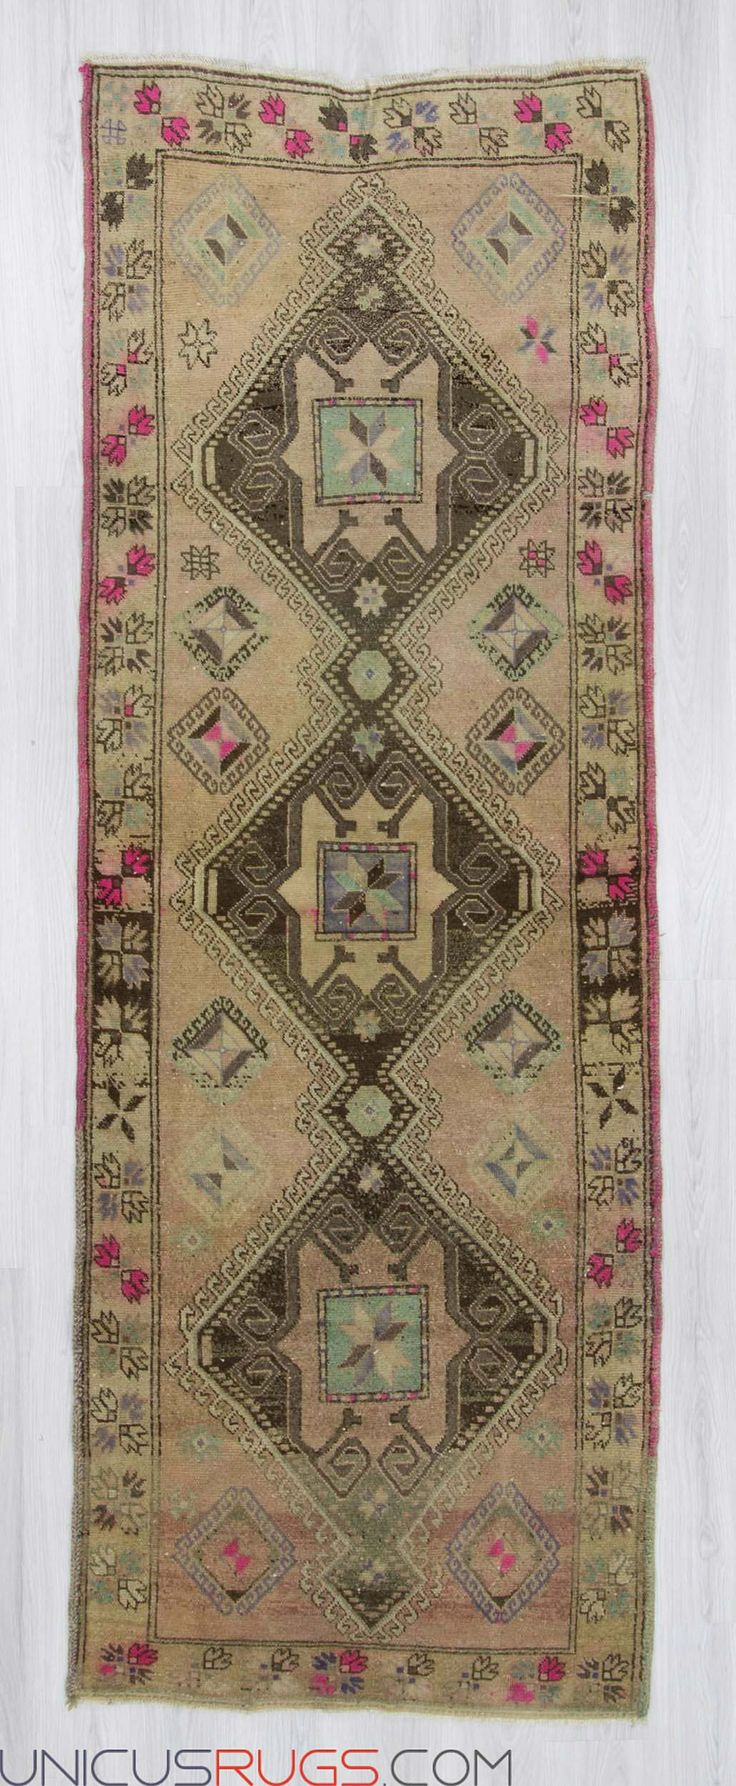 "Vintage decorative runner rug from Malatya region of Turkey. In very good condition. Approximately 50-60 years old. Width: 3' 7"" - Length: 10' 0"" RUNNERS"